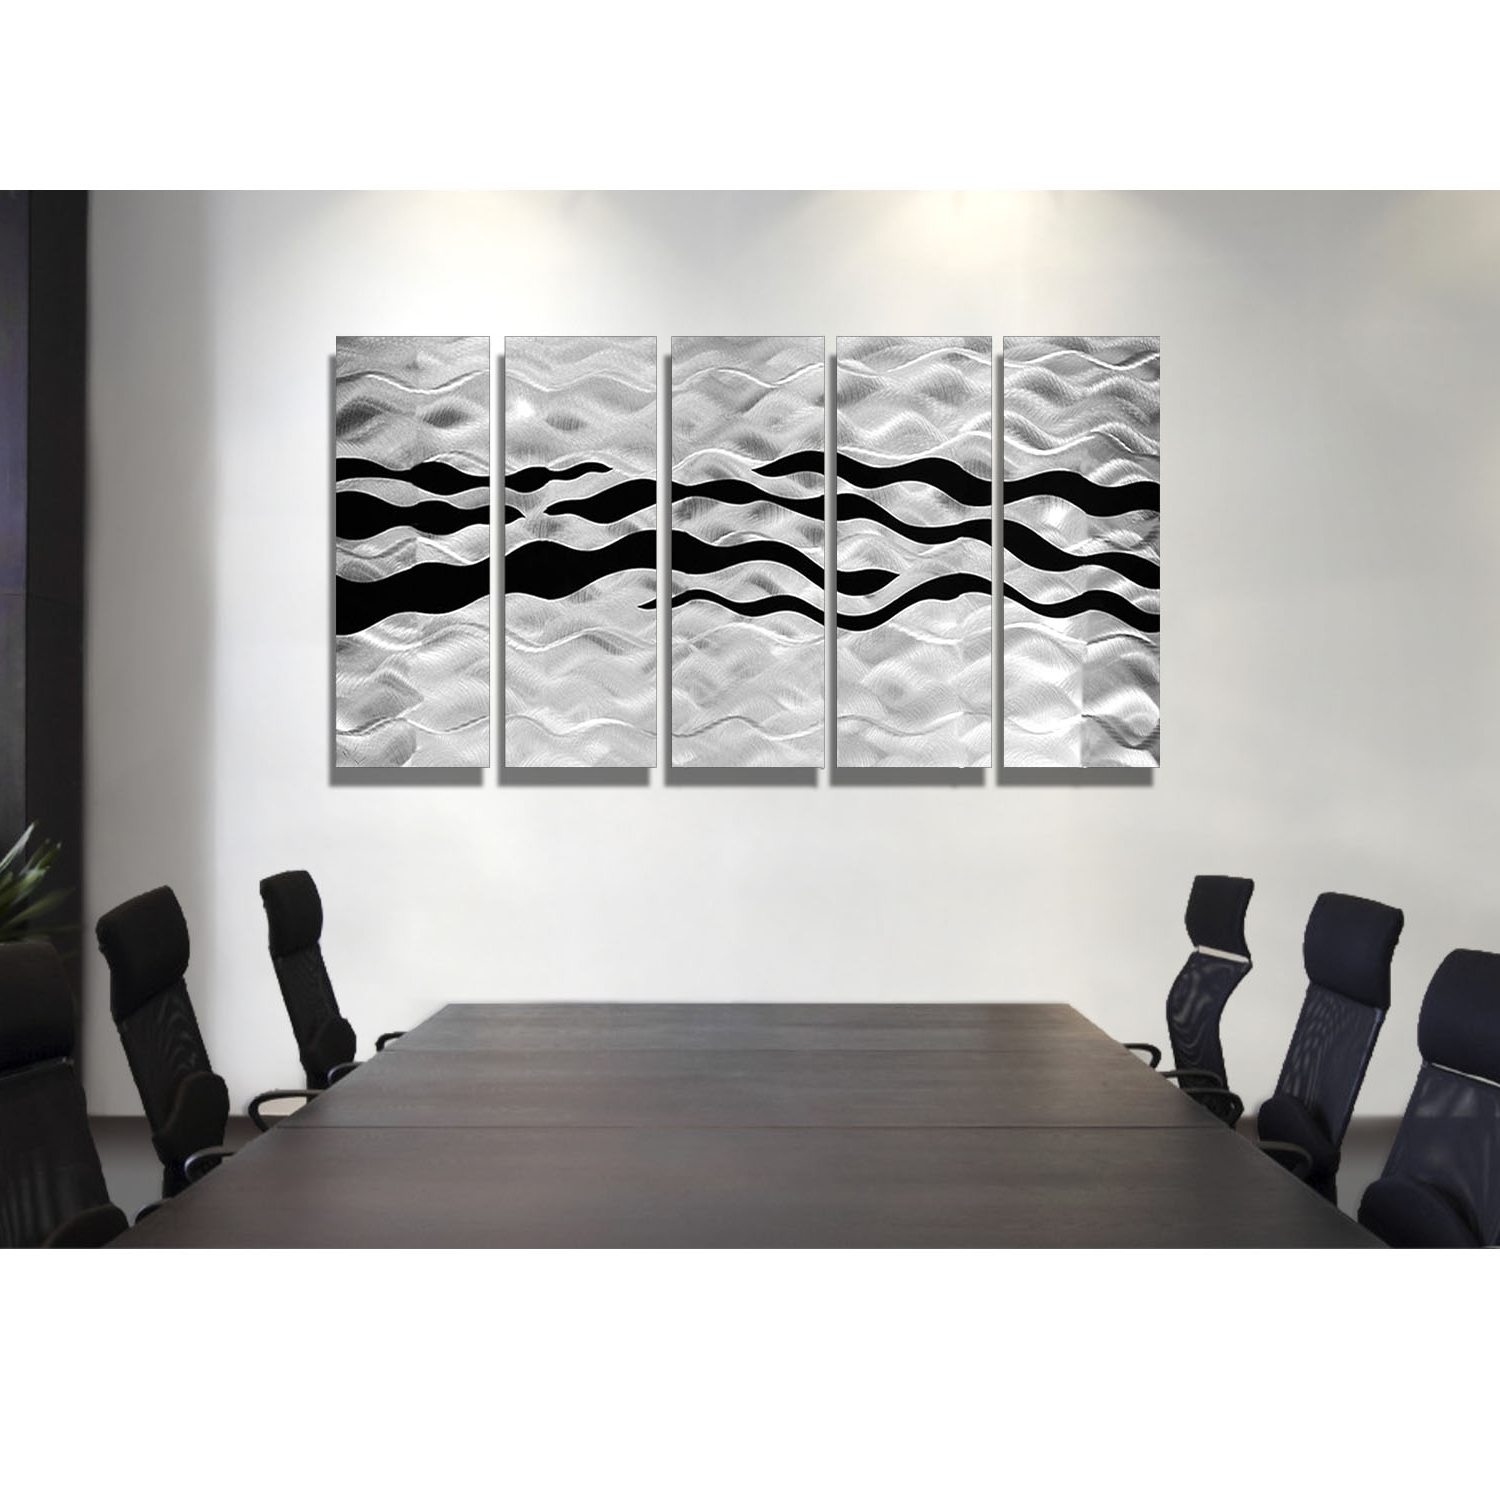 Onyx Oceana – Silver And Black Metal Wall Art – 5 Panel Wall Décor Within Well Known Black Metal Wall Art (Gallery 10 of 20)